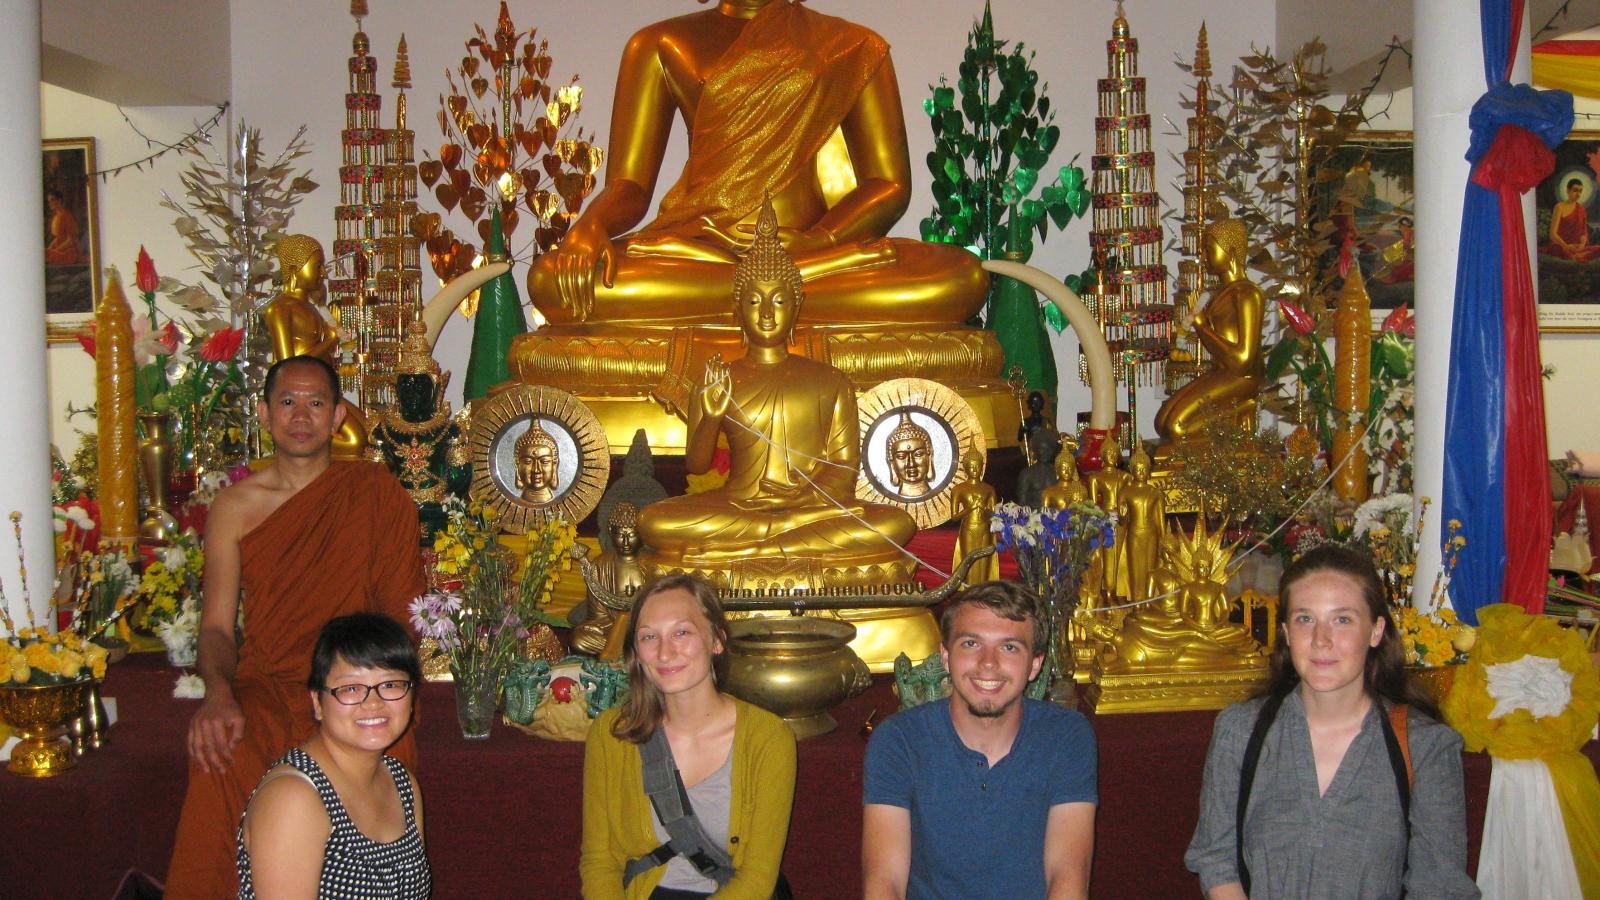 Field research students Dan, Ada, Austin and Kati pictured with Wat Buddhasamakidham Theravada monk Ajanh Sun inside the barn temple.